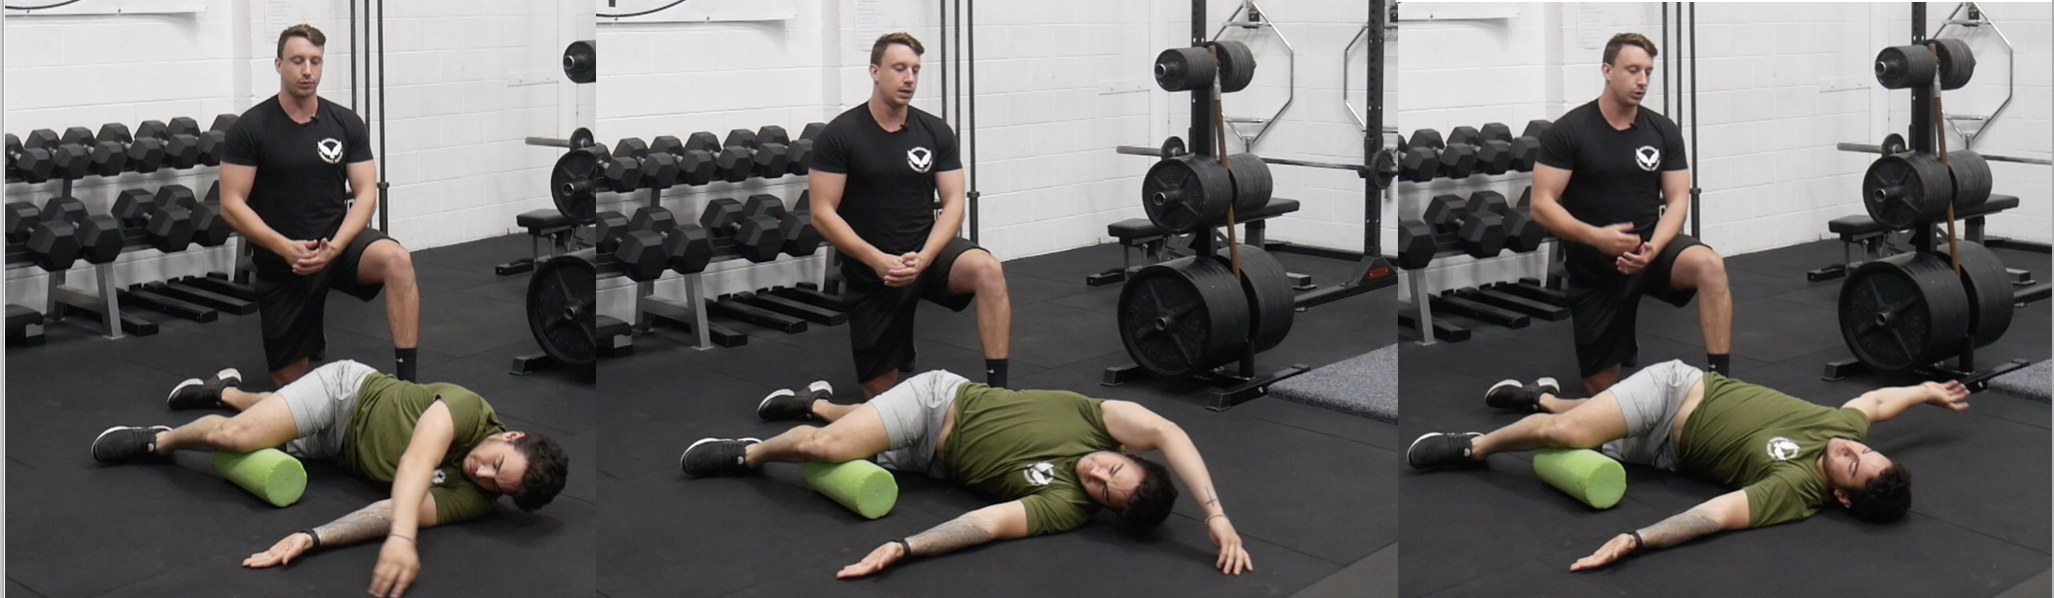 The Side Lying Windmill offers great benefits to thoracic extension and rotation alongside scapular upward rotation and shoulder flexion.